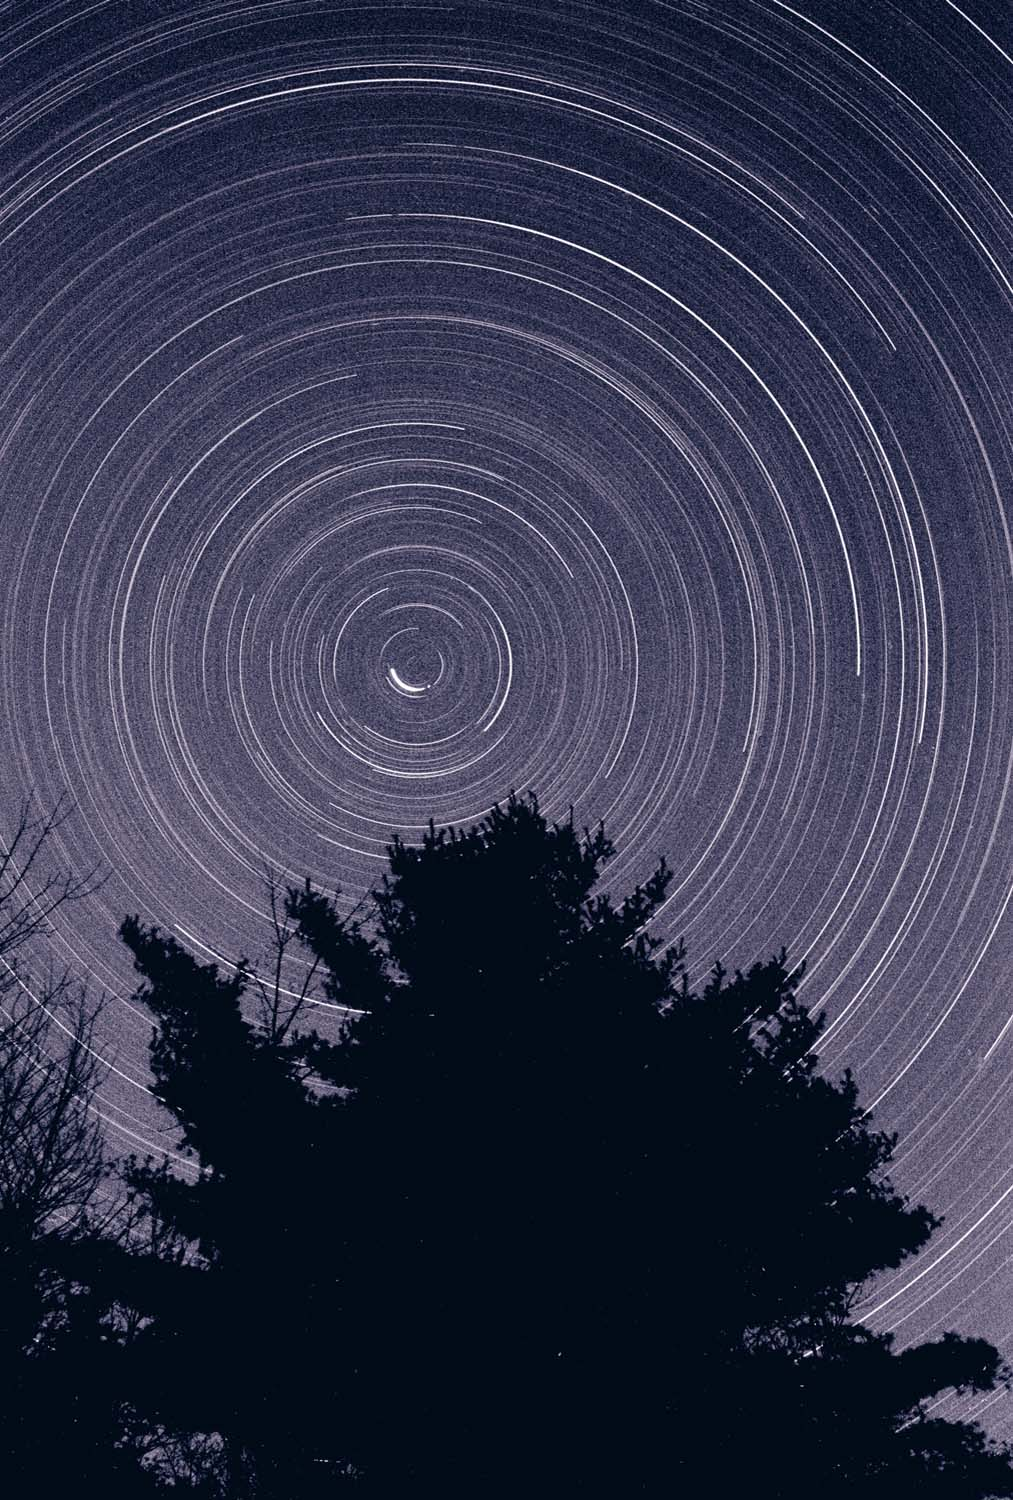 North Star Time exposure on the Vernal Equinox